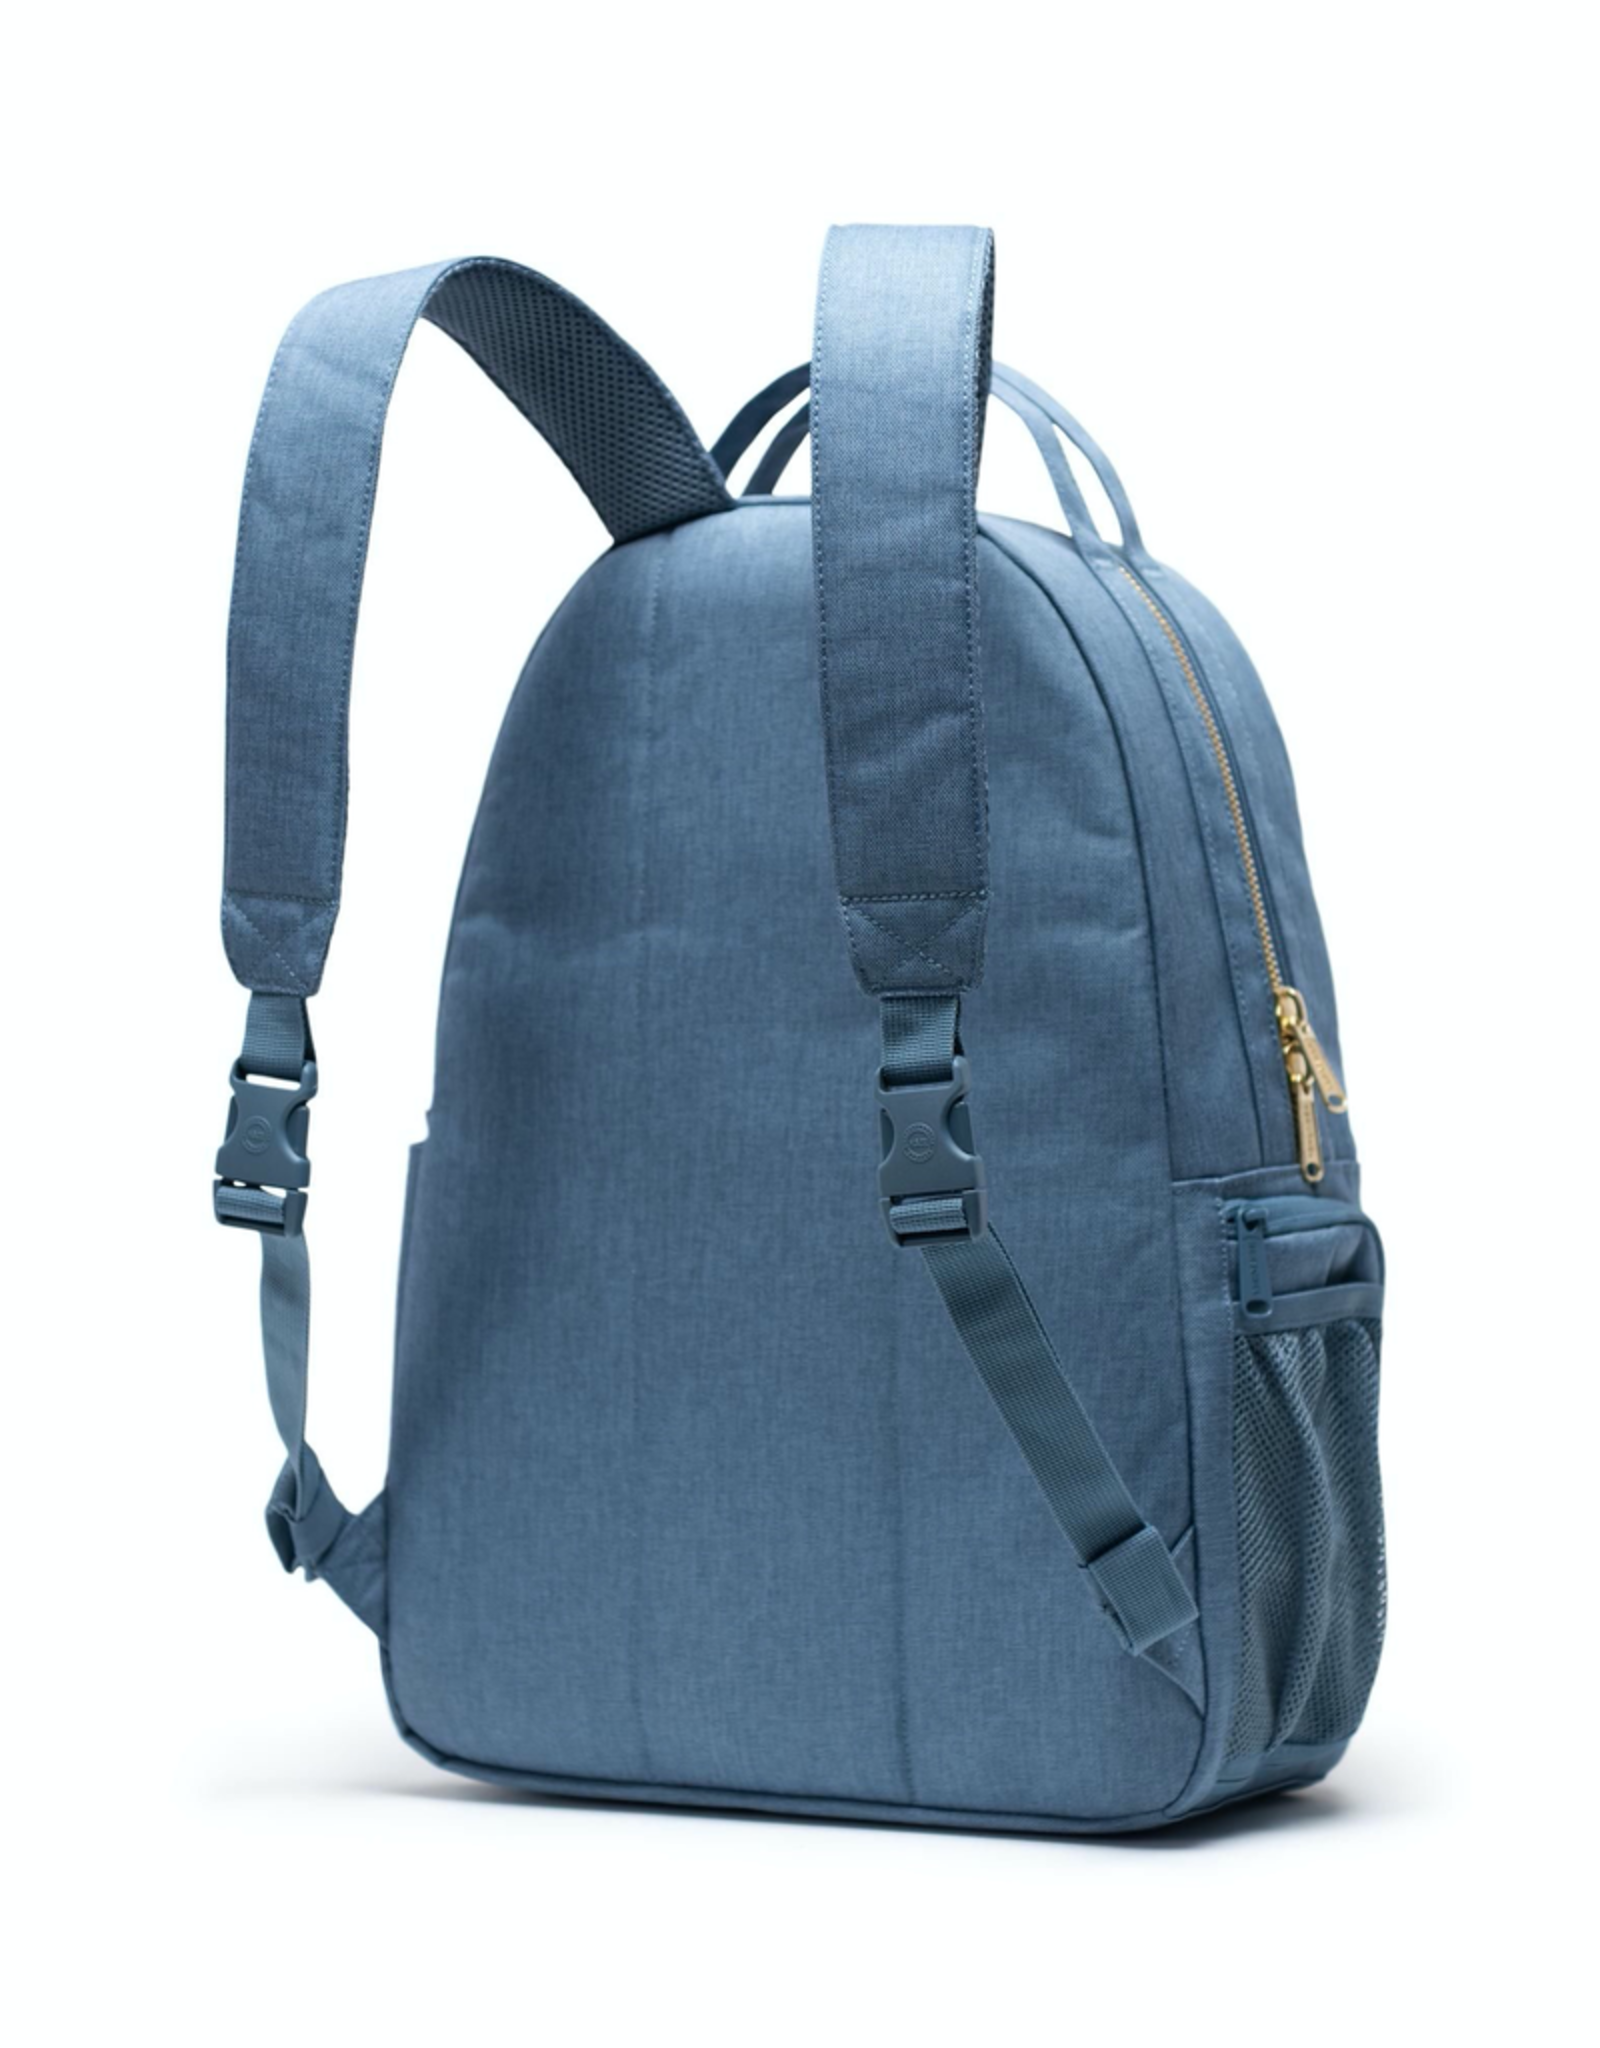 Herschel Supply Co. Nova Backpack | Sprout, Blue Mirage, 21L